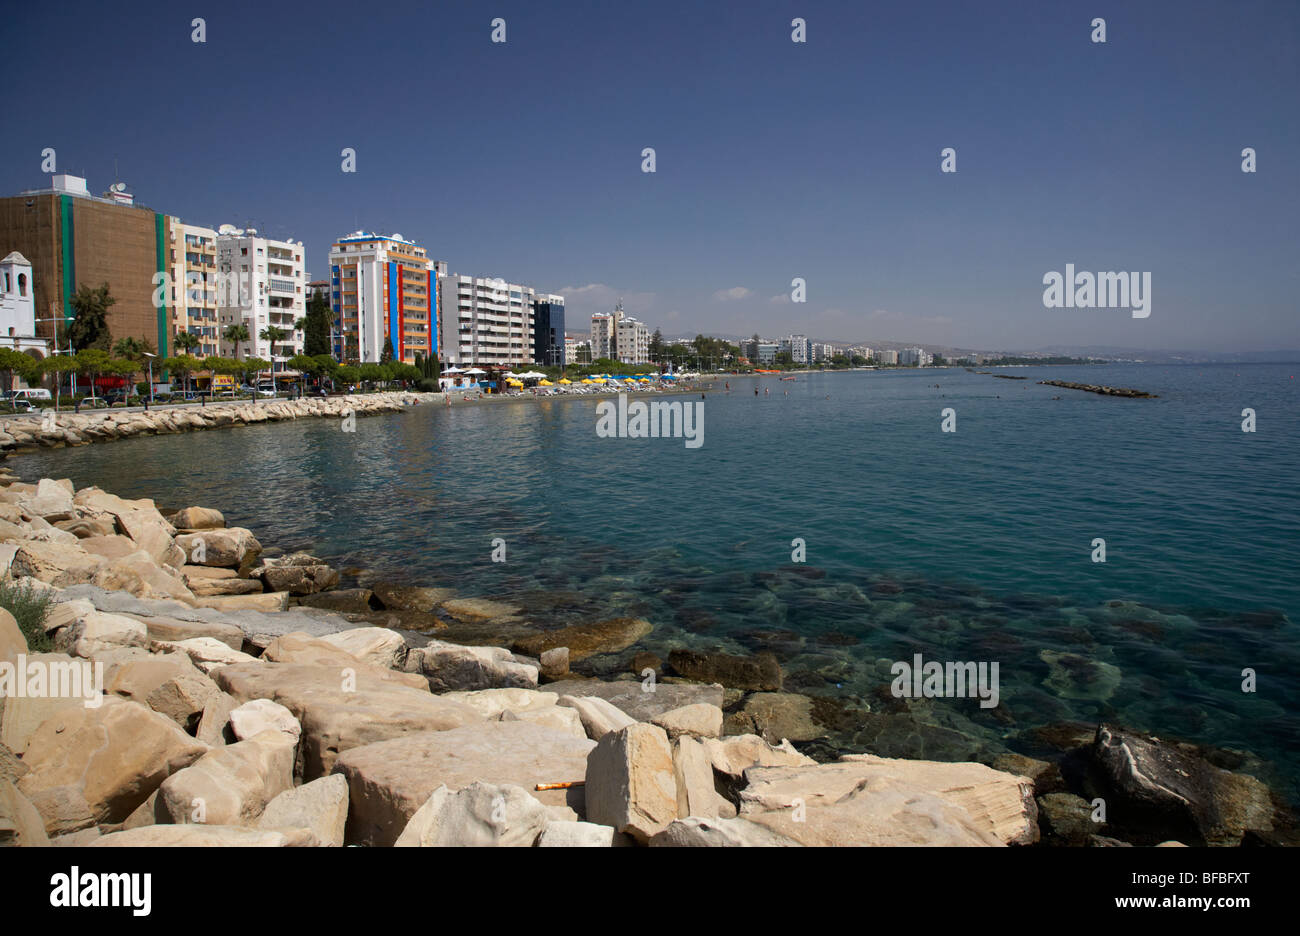 Limassol seafront and breakwater in twin cities park on reclaimed land lemesos republic of cyprus europe - Stock Image